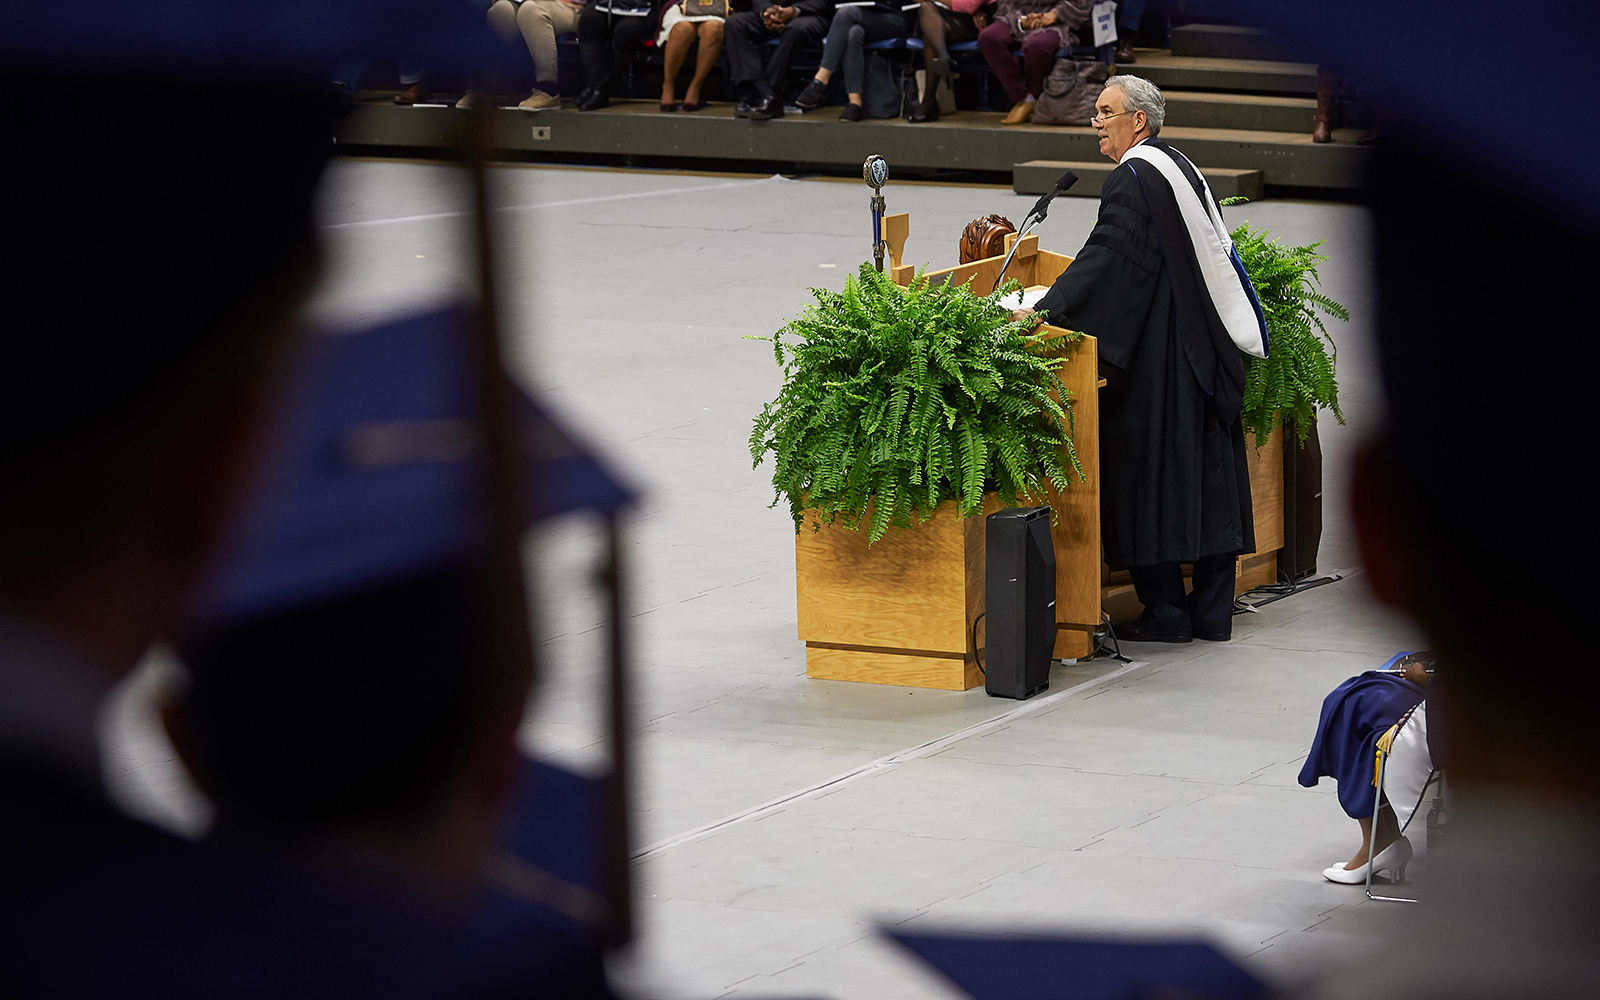 Douglas Elliot '82 (BUS) gives the address during the School of Business Commencement ceremony at Gampel Pavilion on May 7, 2017. (Peter Morenus/UConn Photo)